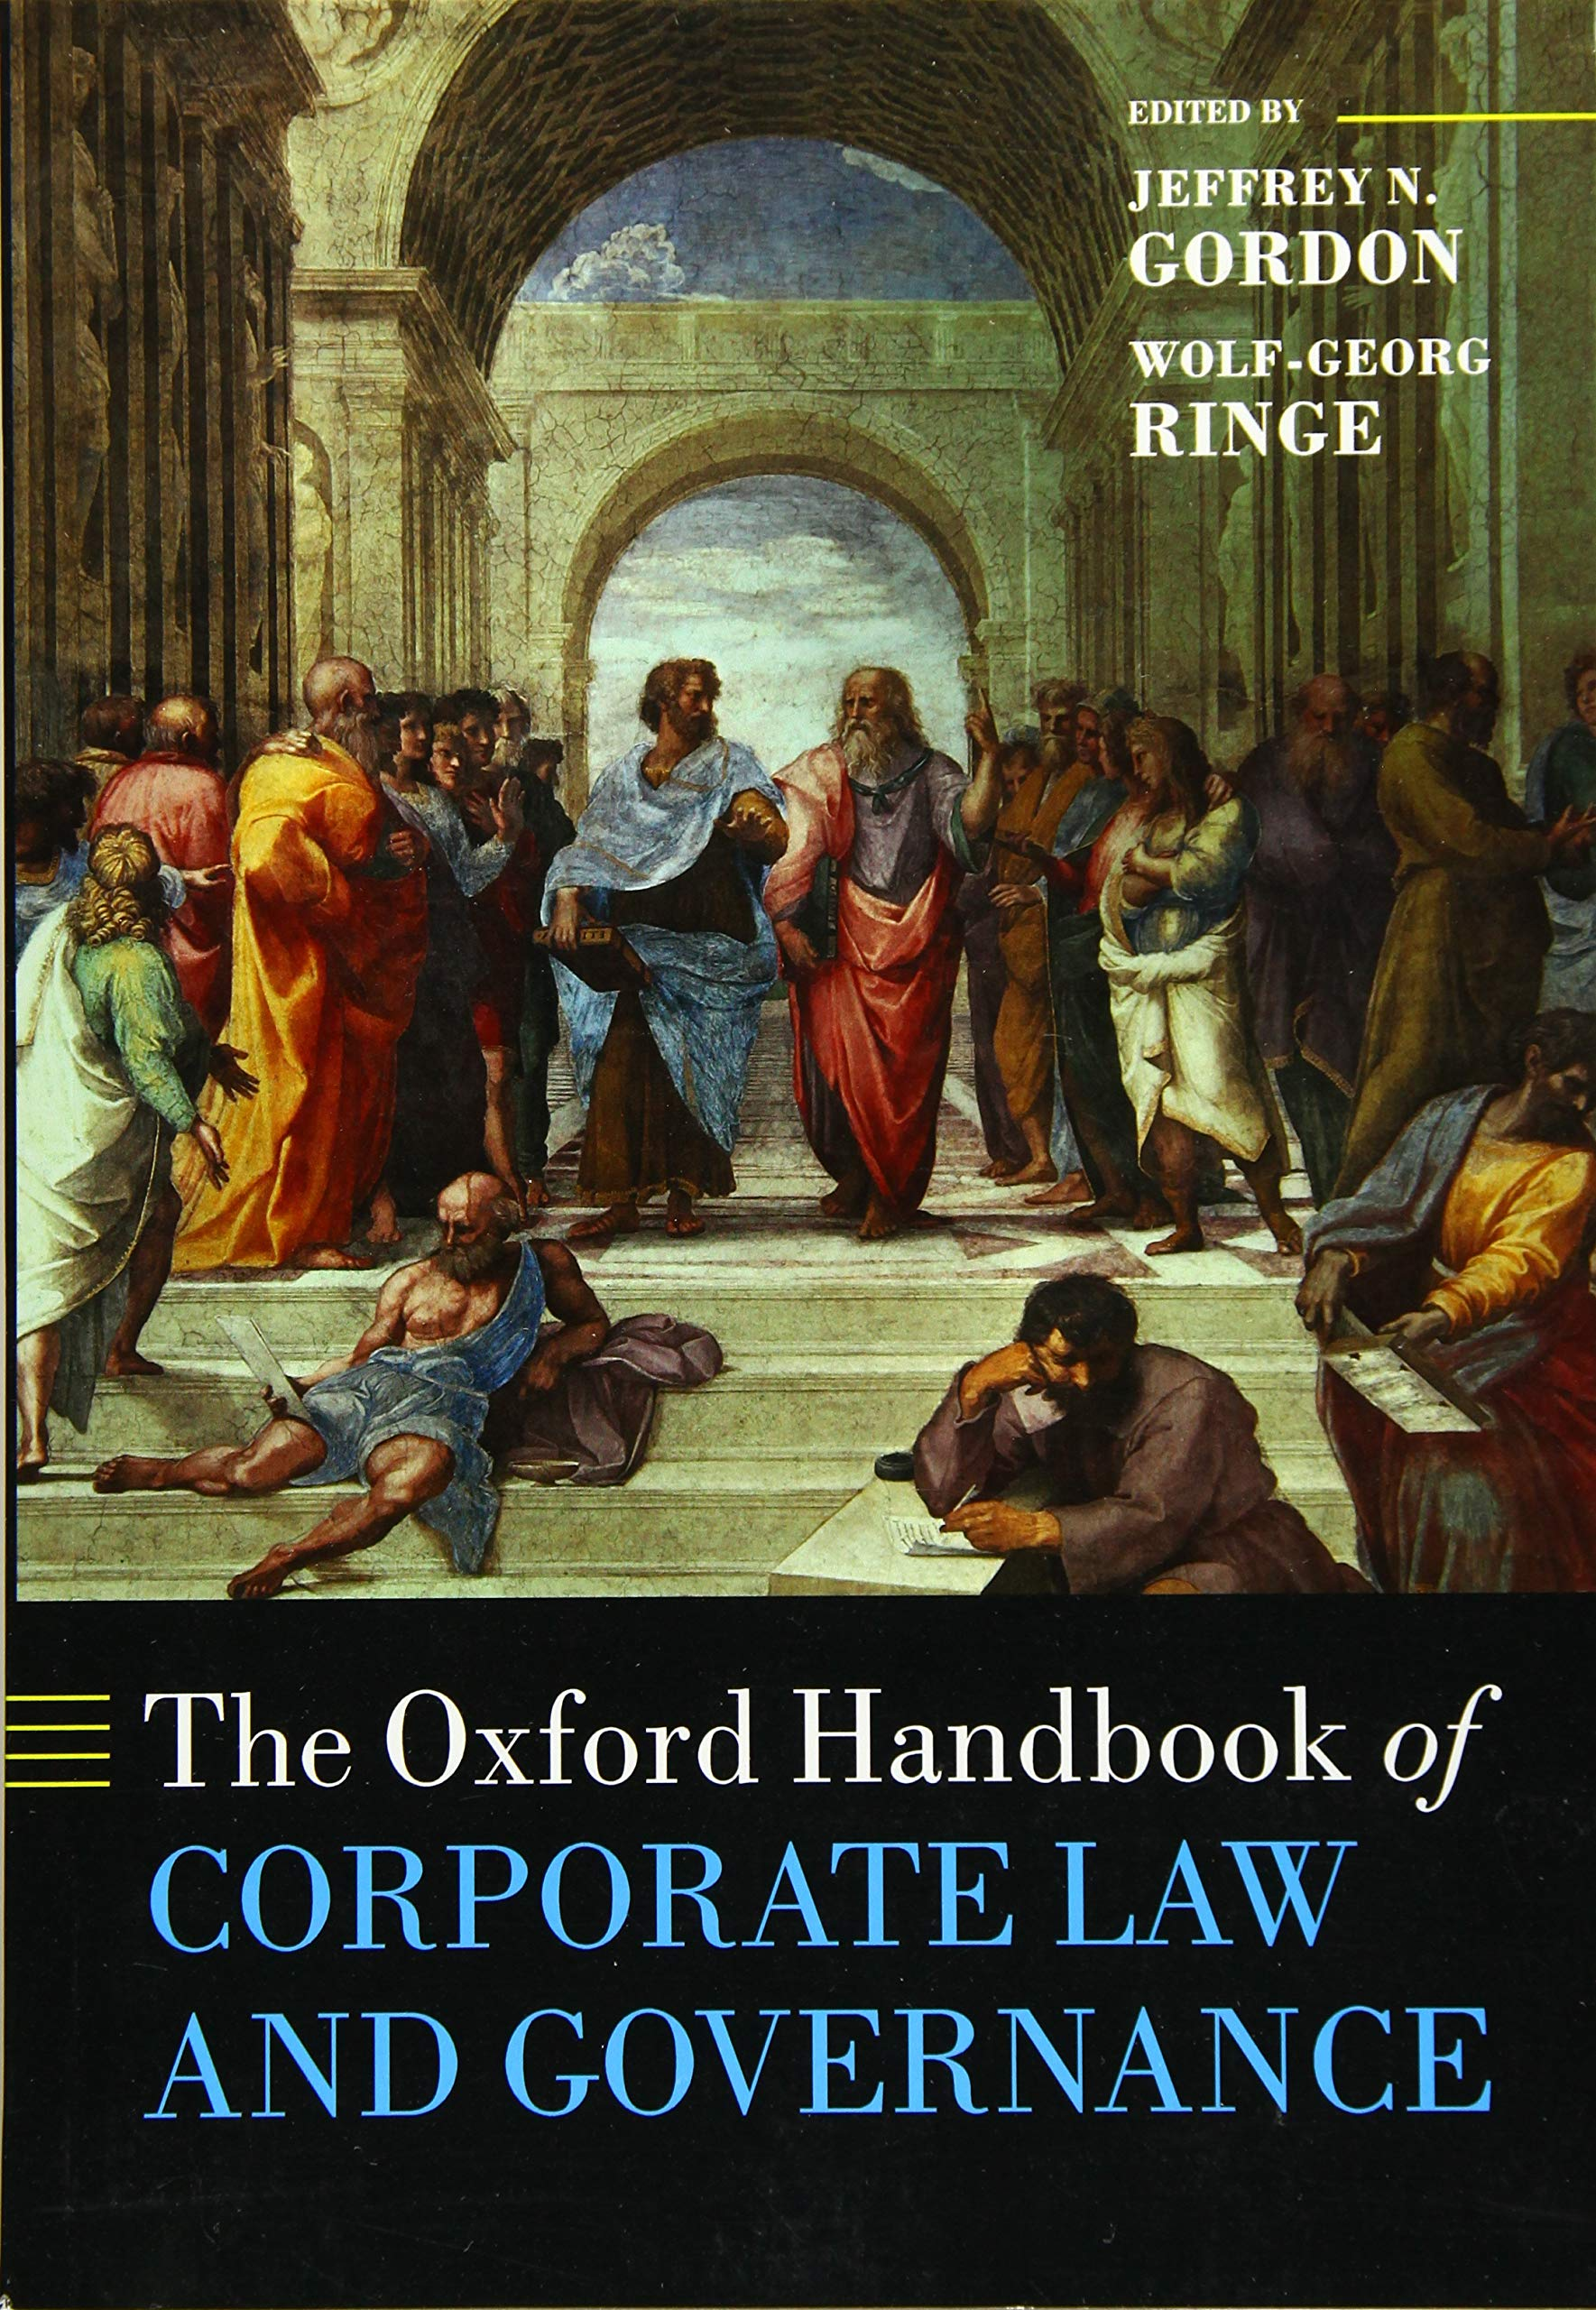 The Oxford Handbook of Corporate Law and Governance Paperback – 30 June 2020